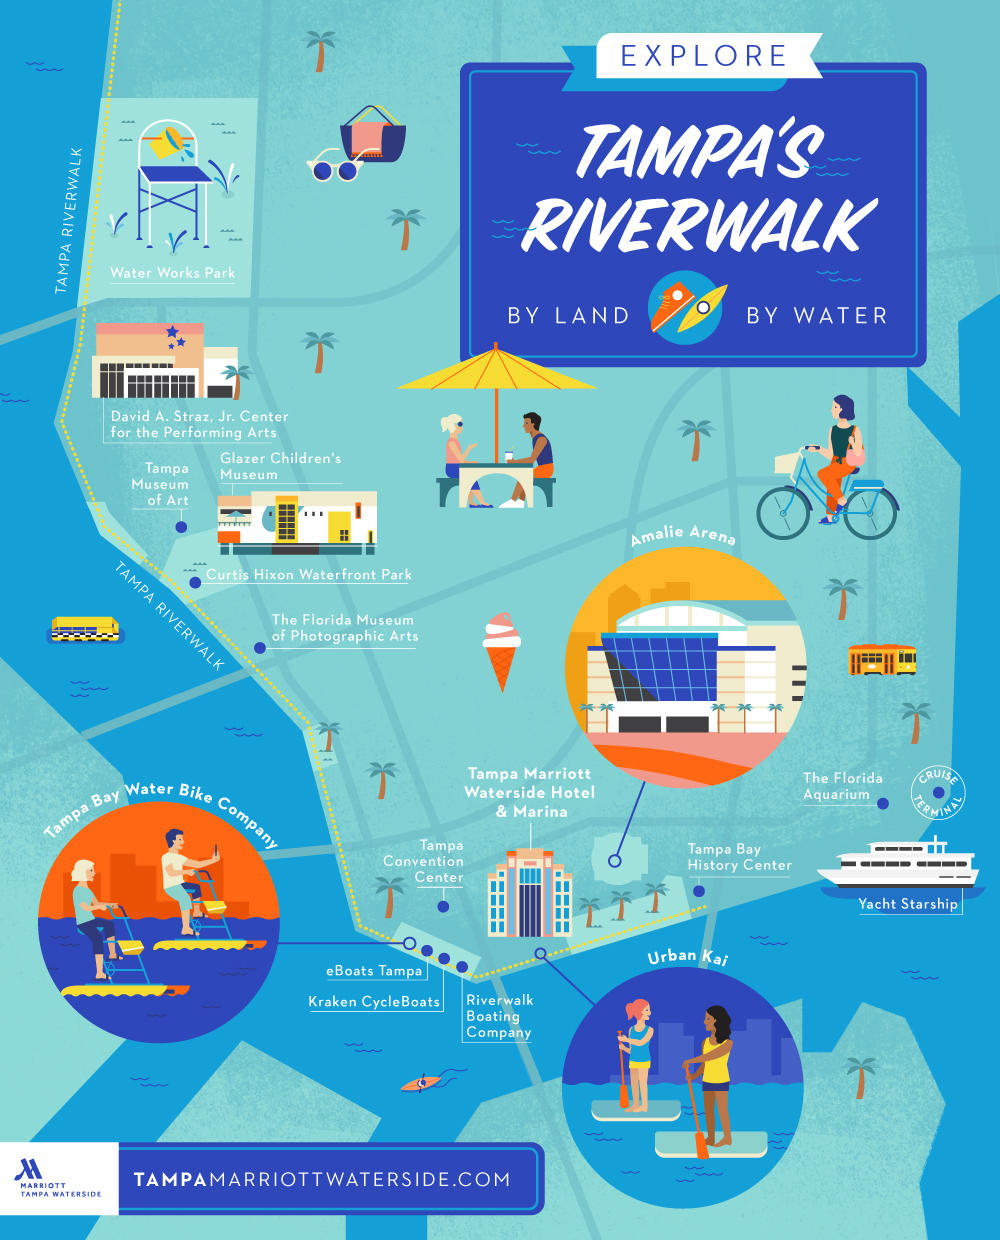 Explore Tampa's Riverwalk Map